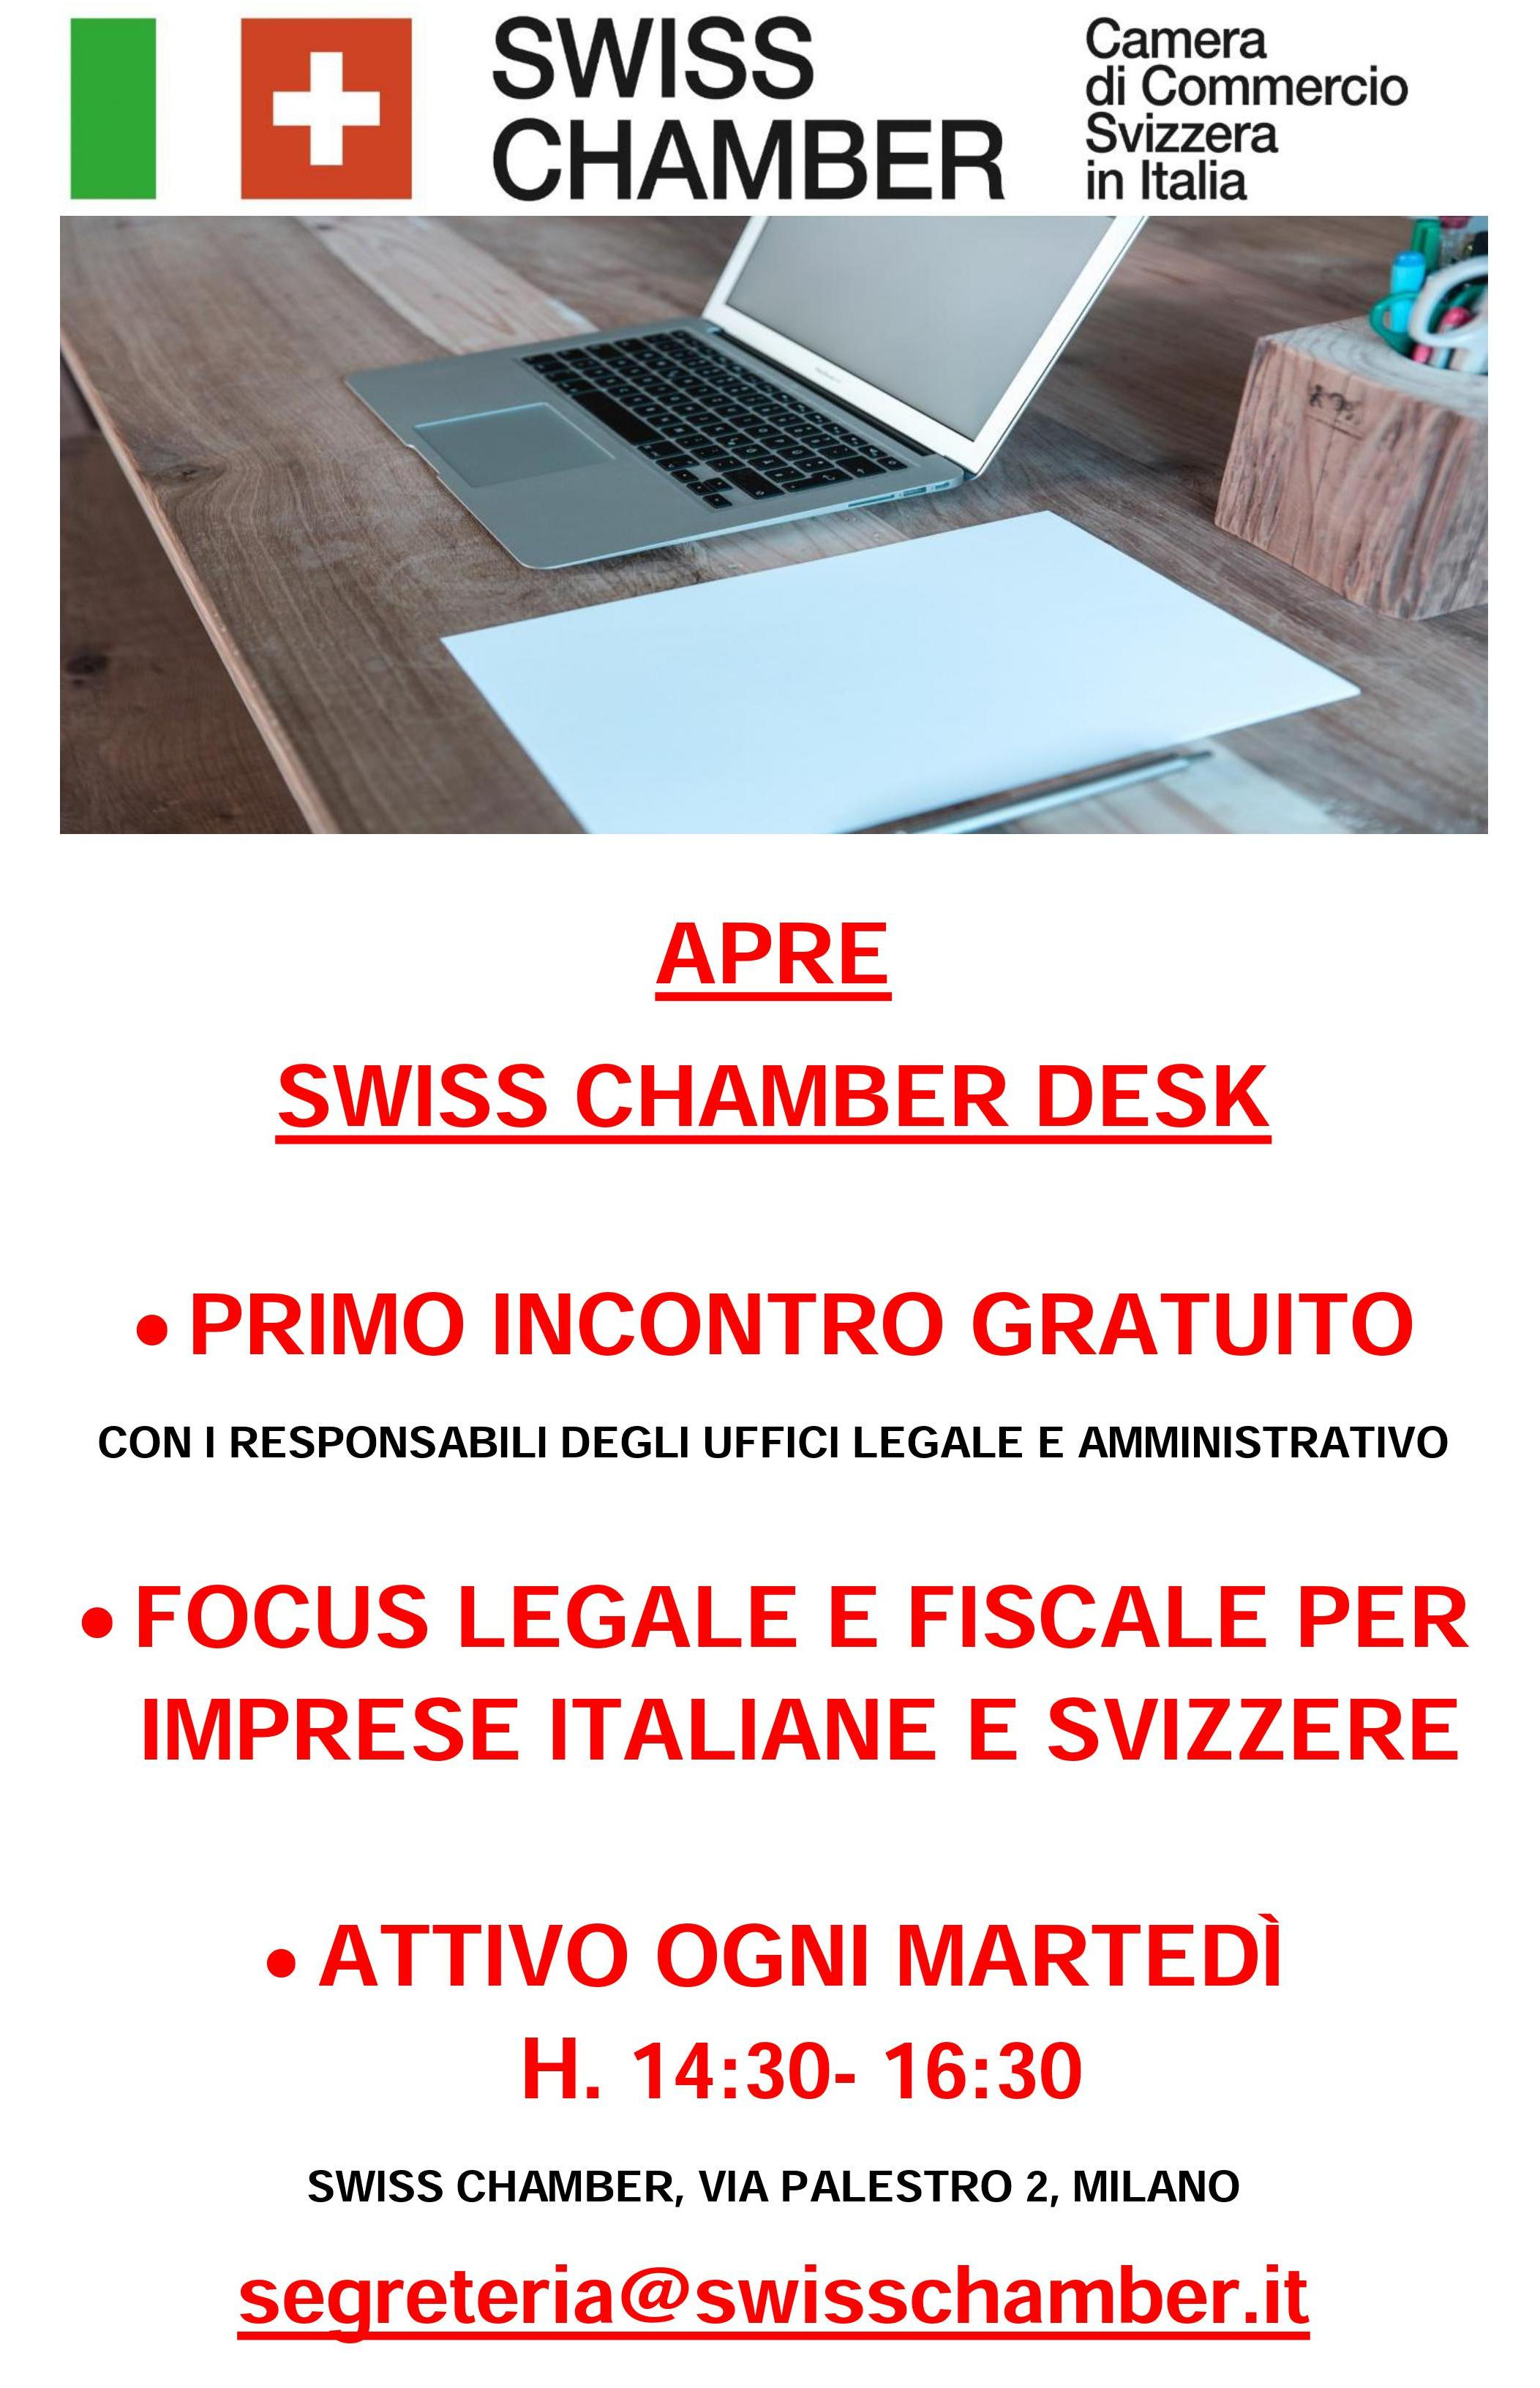 Swiss chamber Desk